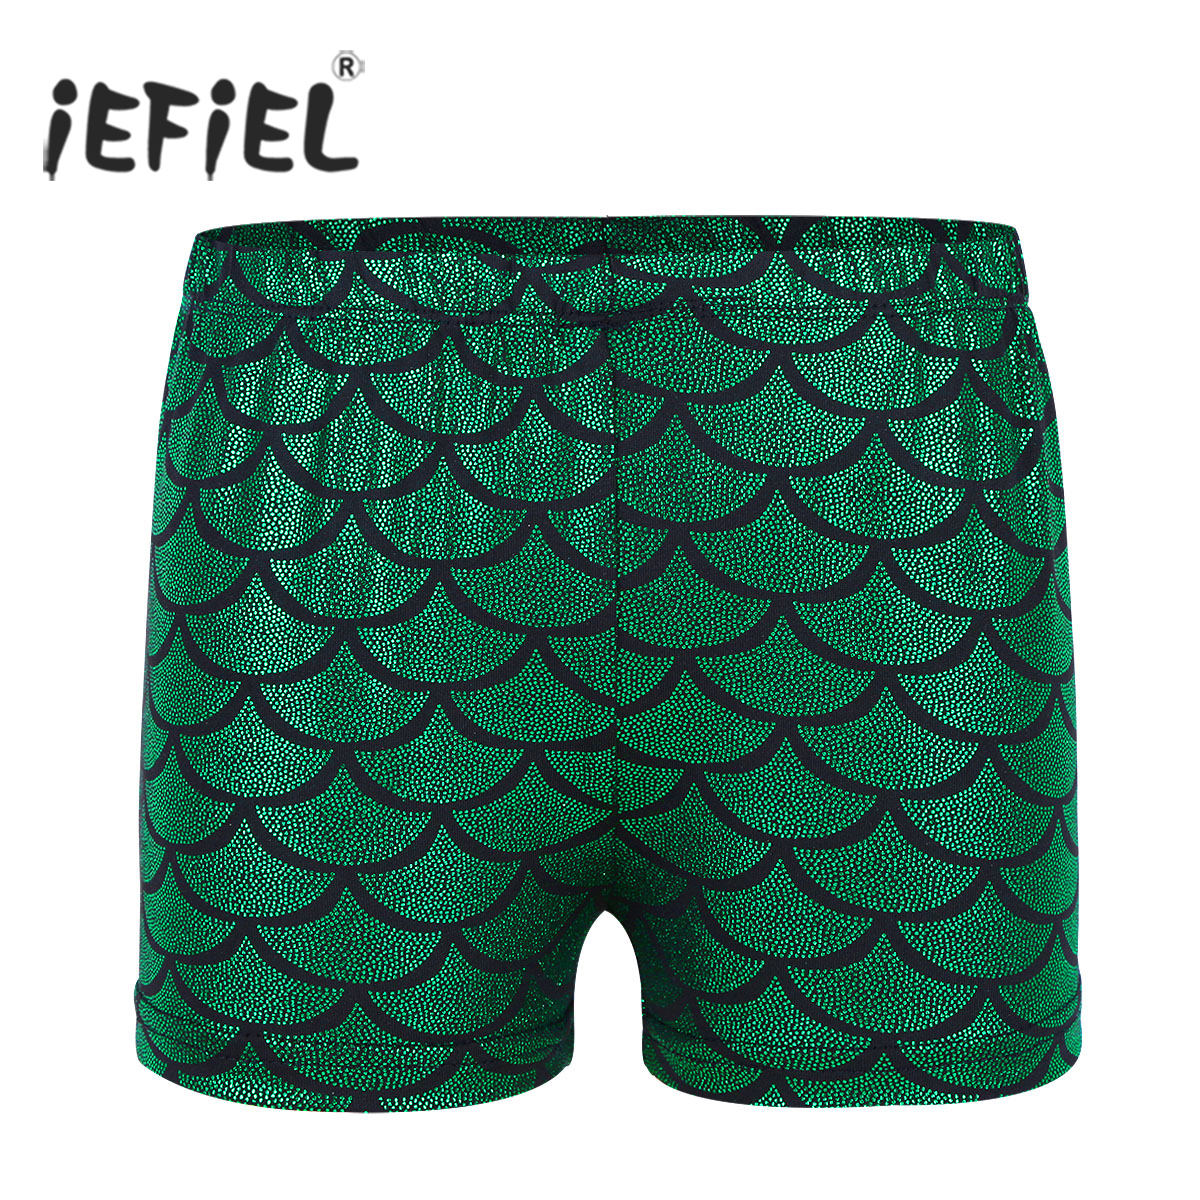 Girls Shiny Mermaid Scales Printed Dance Shorts Bottoms Activewear for Sports Gymnastic Leotard Workout Shorts for Dancing